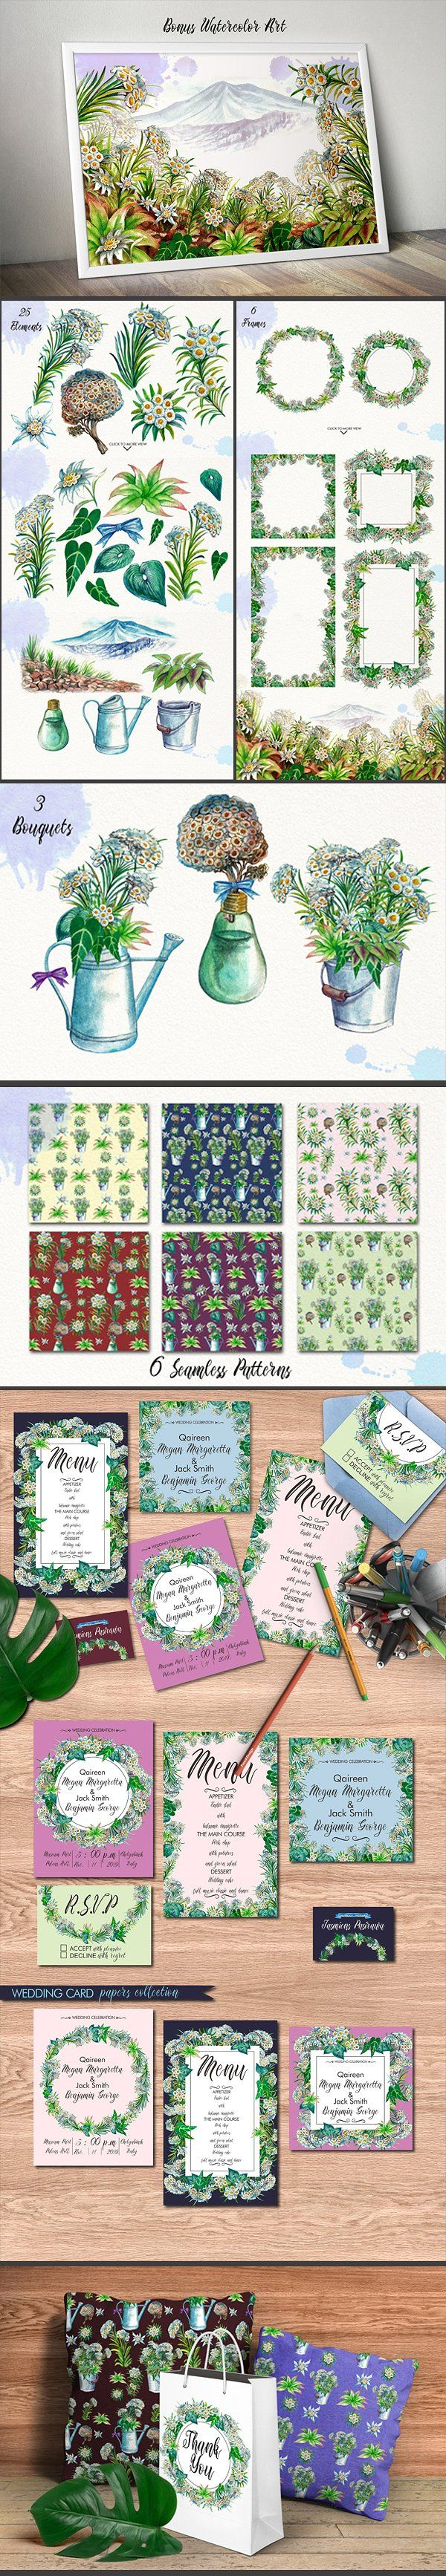 Watercolor Edelweiss by iGRAPHOBIA on @creativemarket